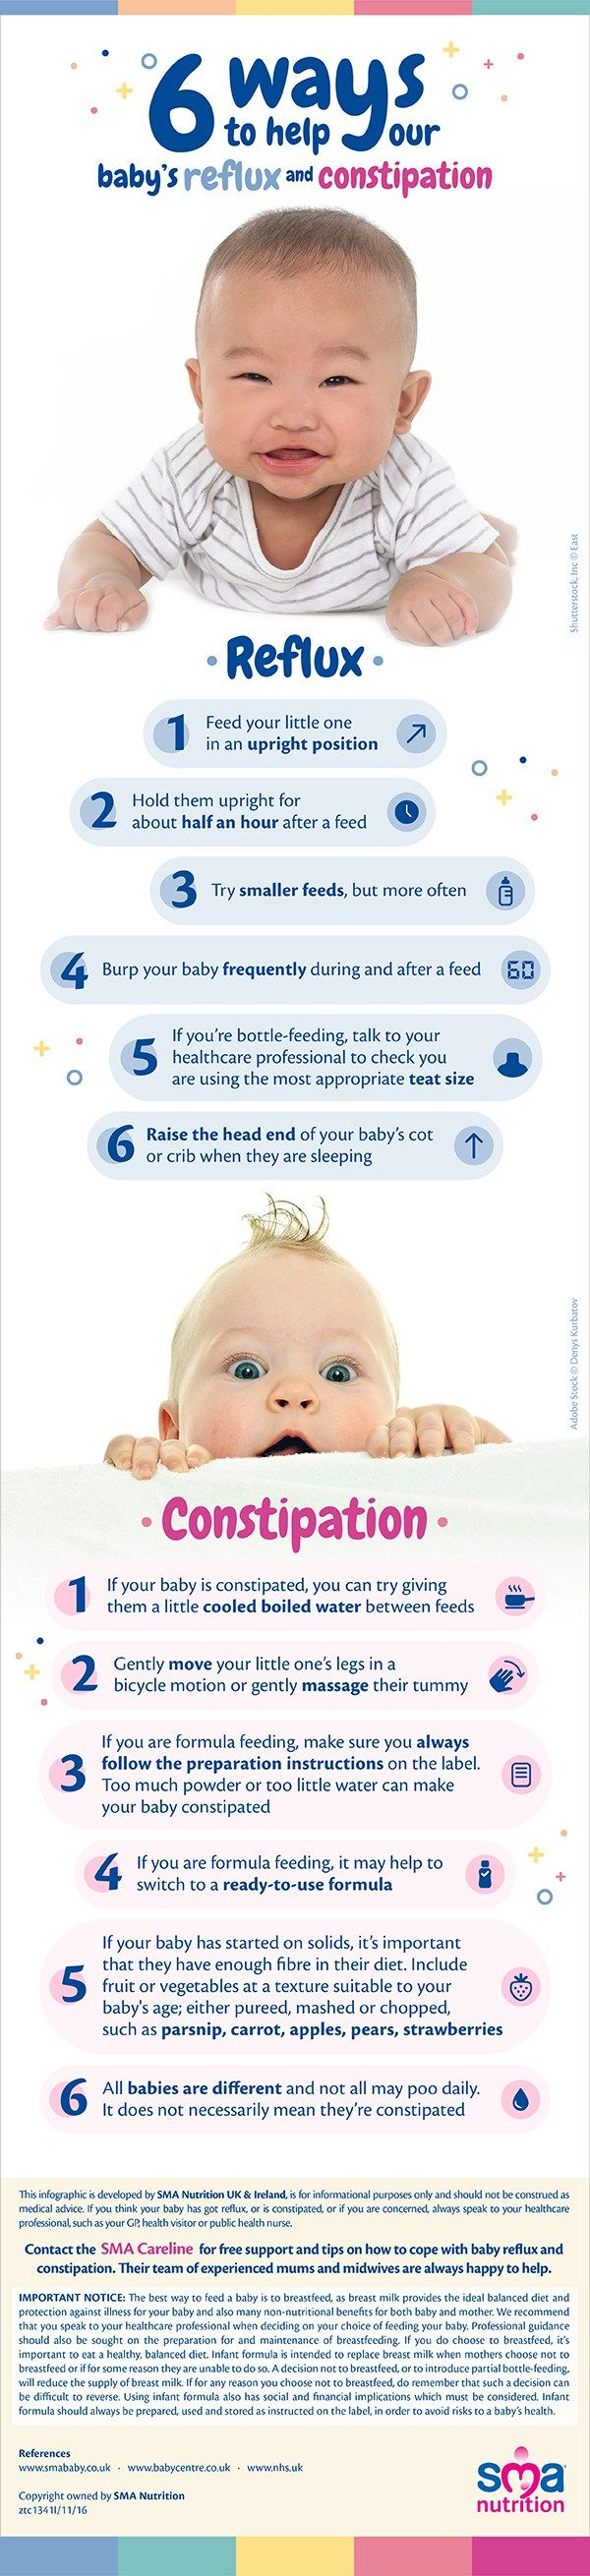 Reflux can be tough for you and baby - we are collaborating with SMA Nutrition to bring you a few ideas that may help ease those early baby feeding issues #ad #refluxinbabies #babyfeedingissues #newborn